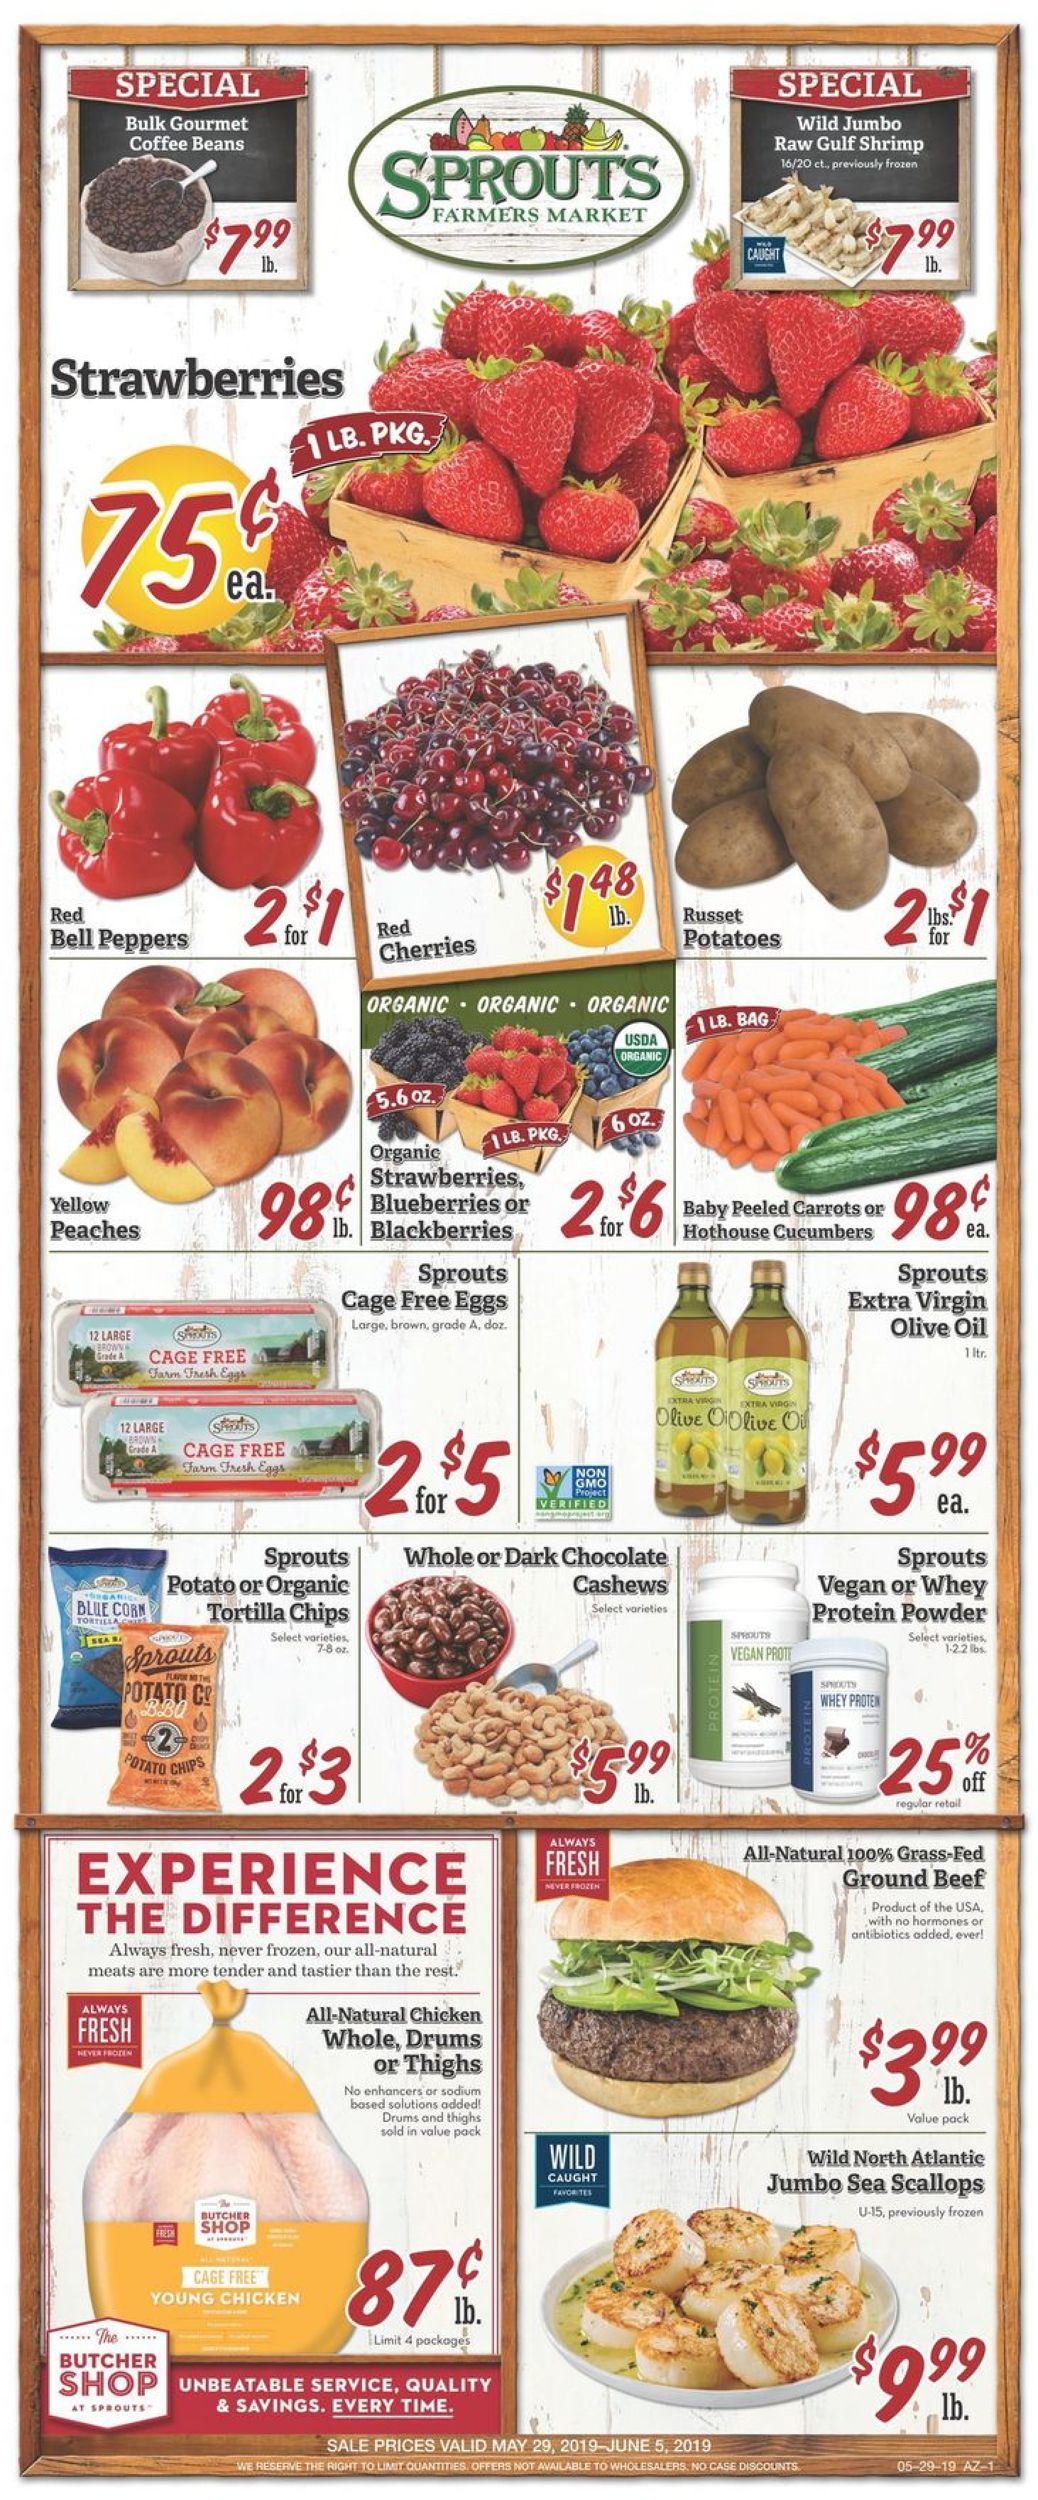 Sprouts Current weekly ad 05/29 - 06/05/2019 - frequent-ads com